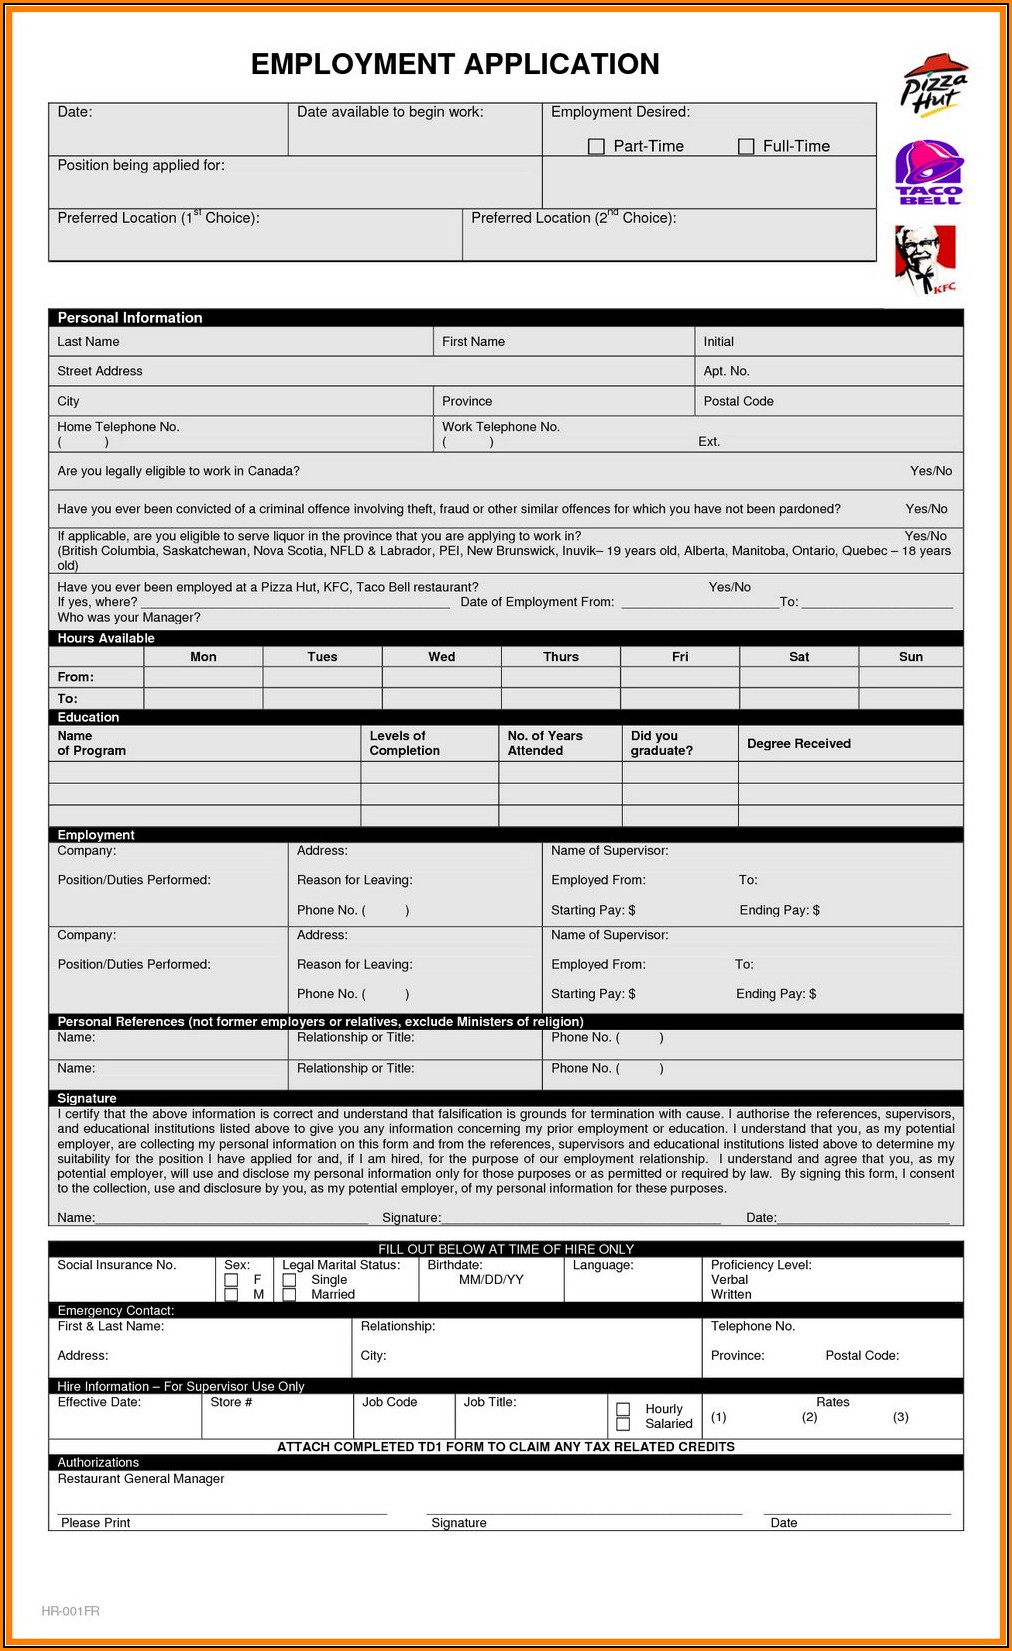 Job Application For Ups Package Handlers